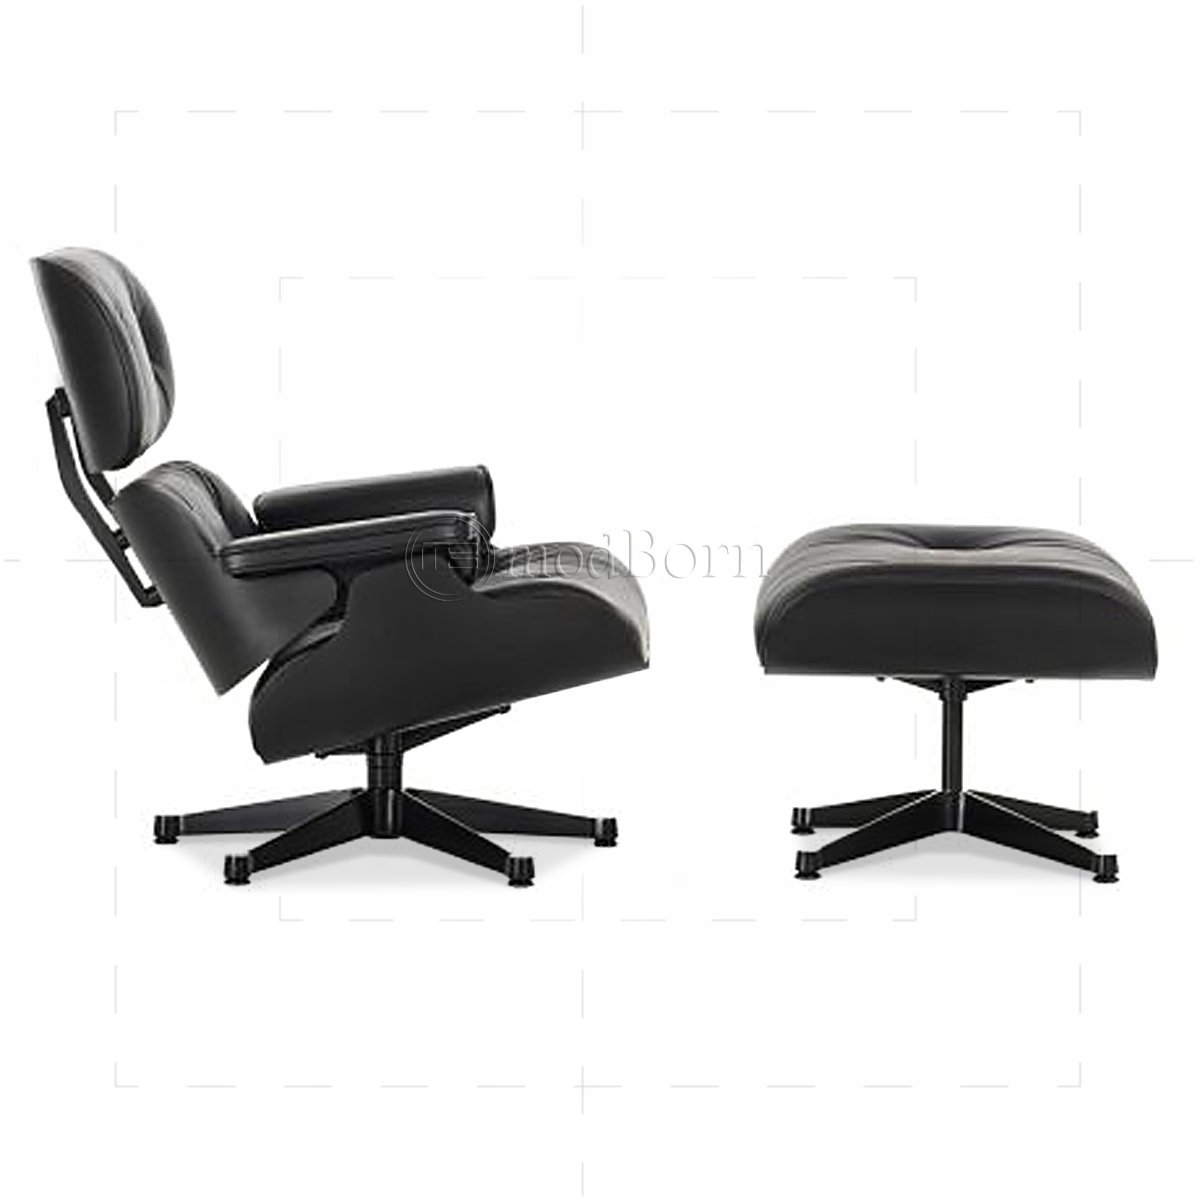 Eames Style Lounge Chair and Ottoman Black Leather Black Wood